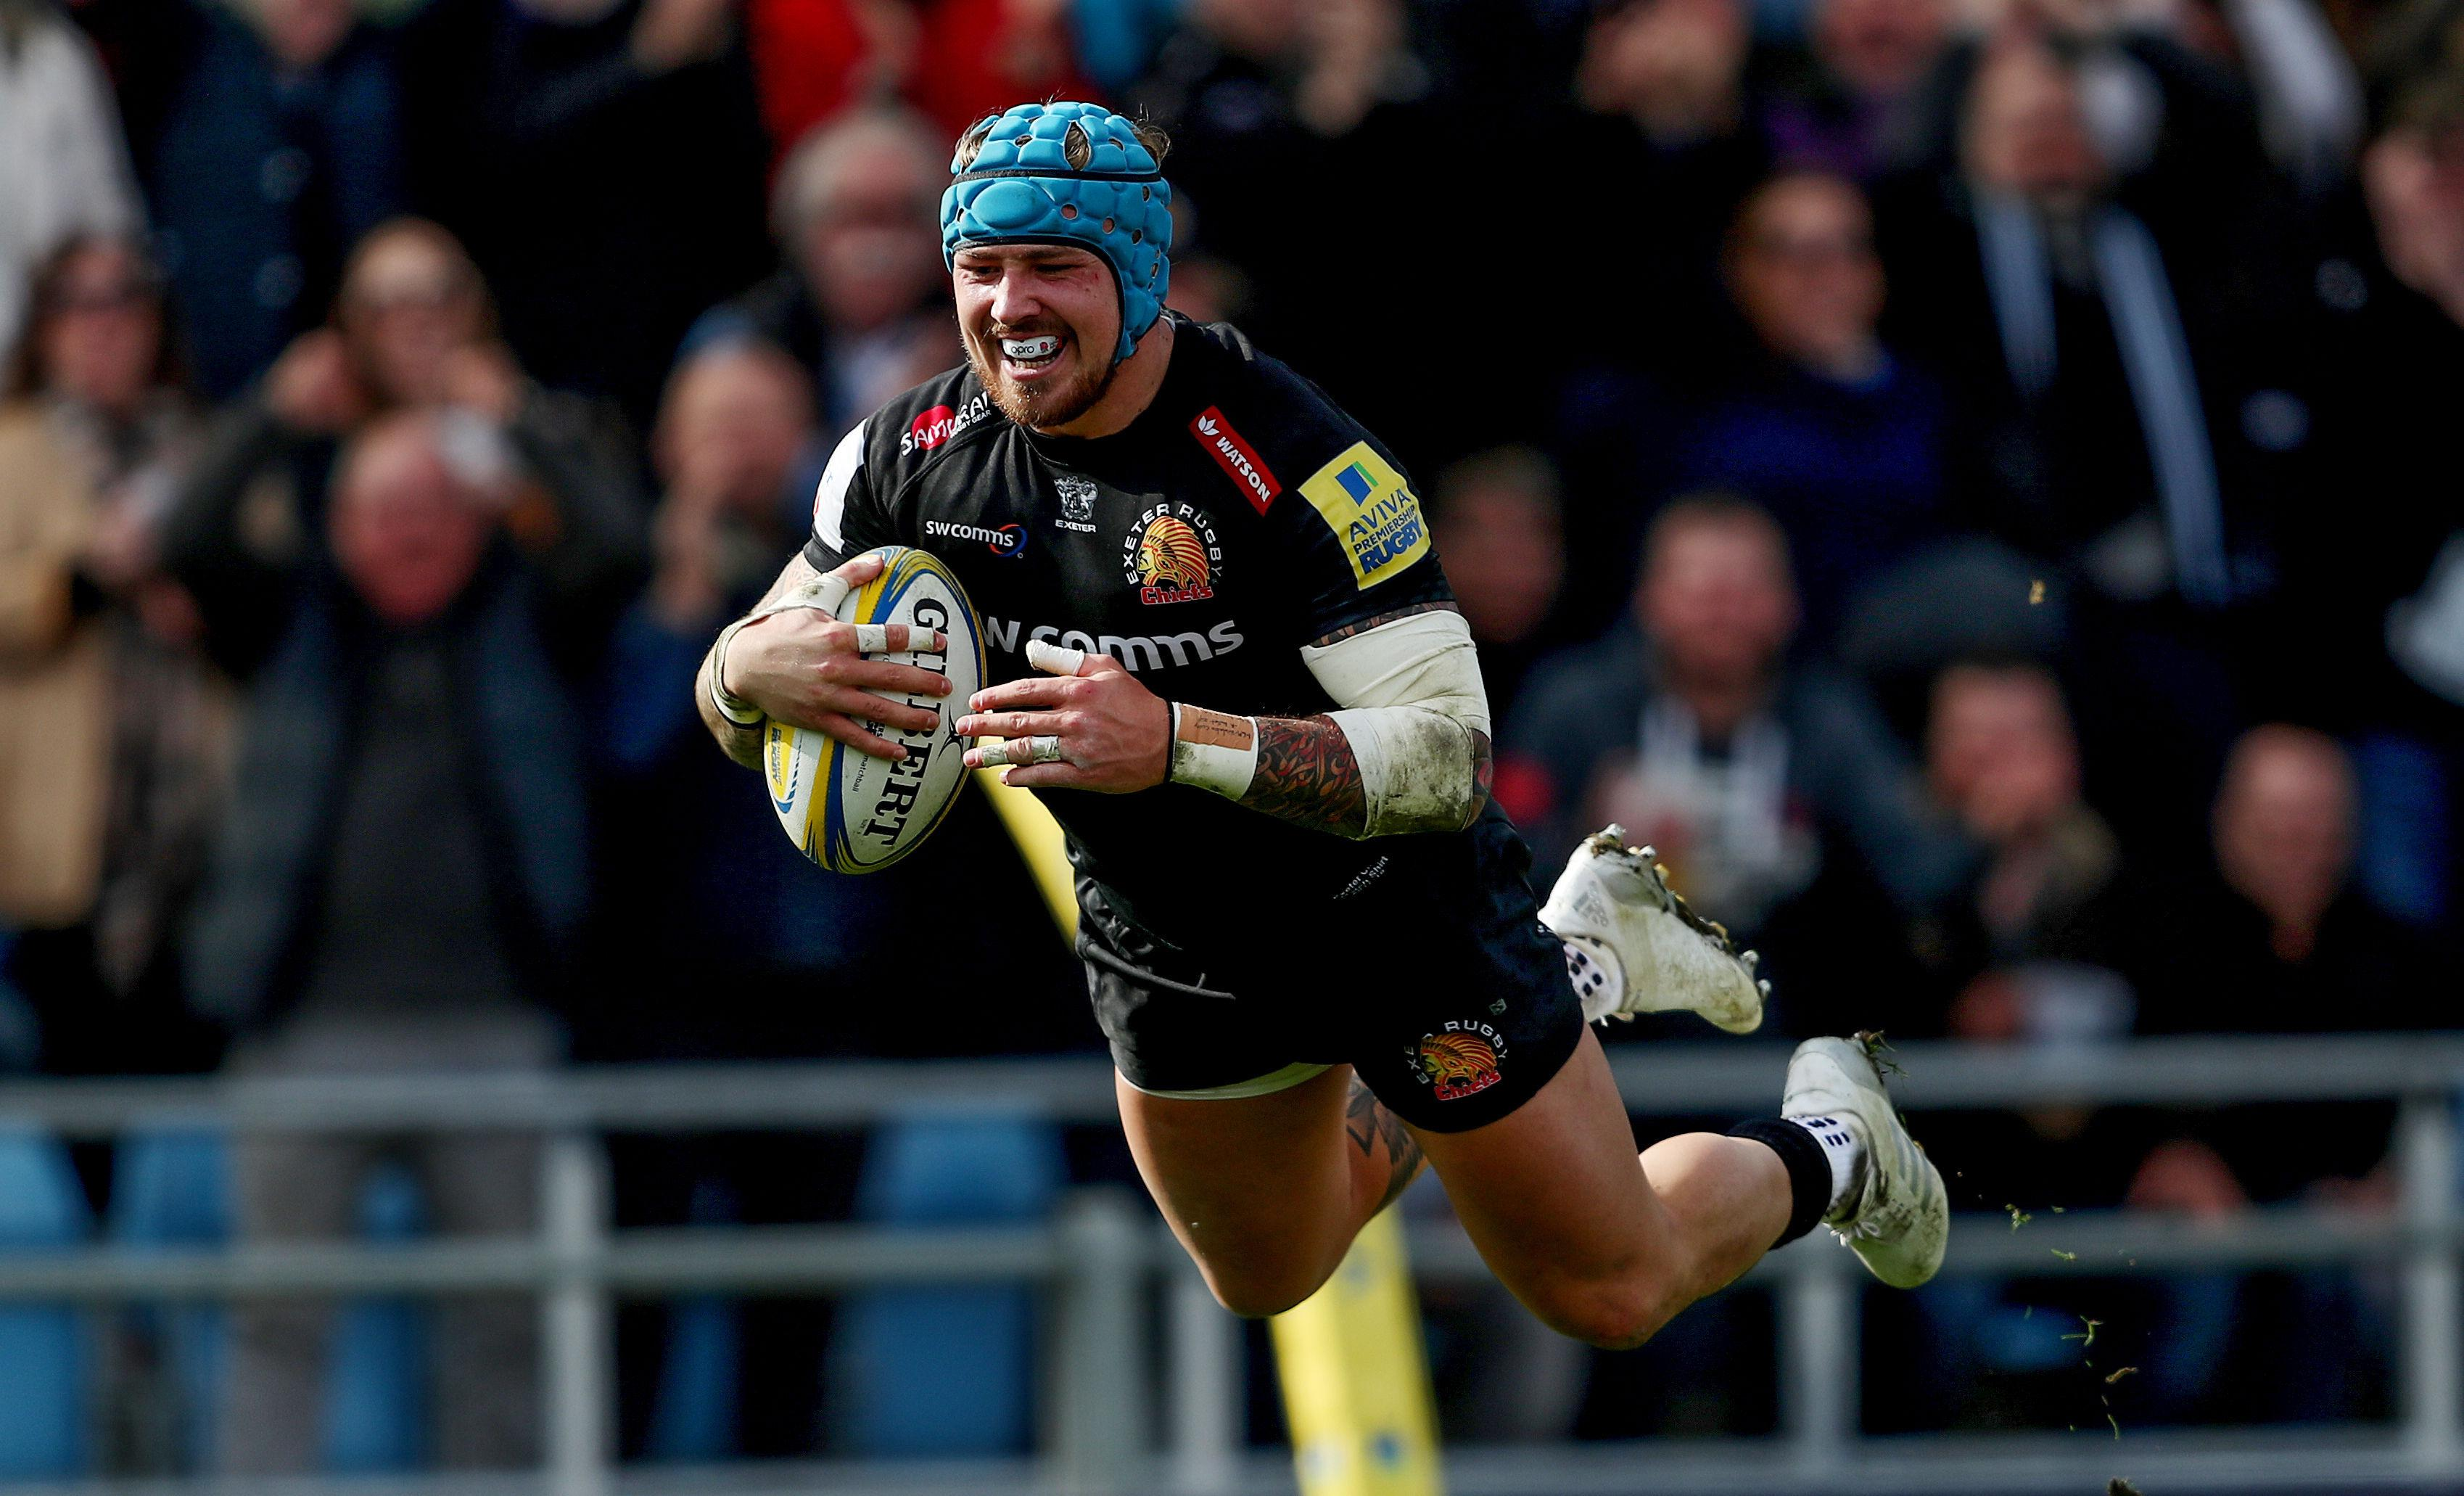 Lions and England winger Jack Nowell should be back for Exeter Chiefs at the end of the month after an injury lay-off